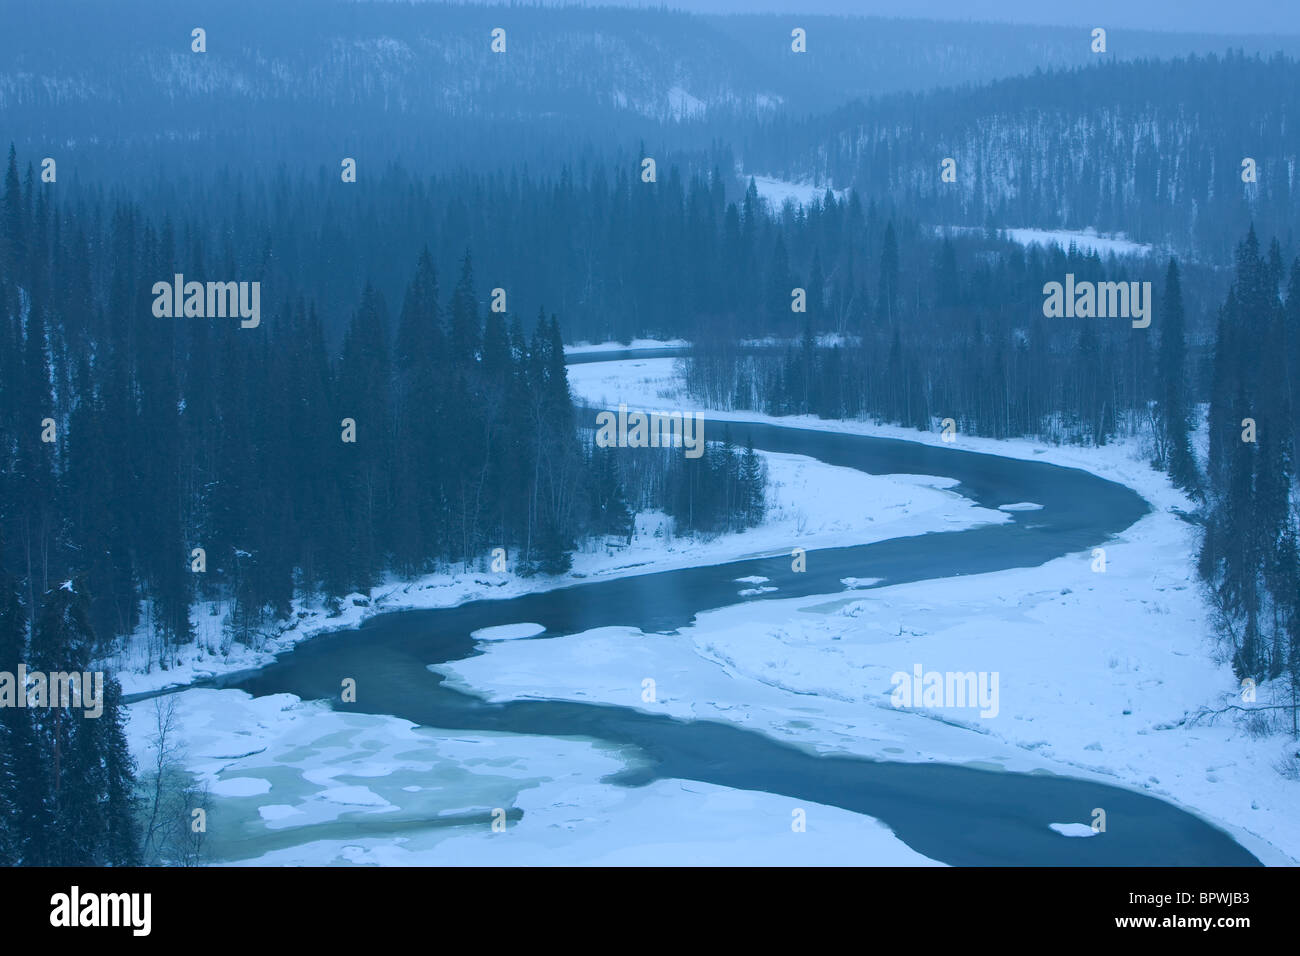 The Kitka River in a snowstorm in Oulanka National Park, Finland. - Stock Image